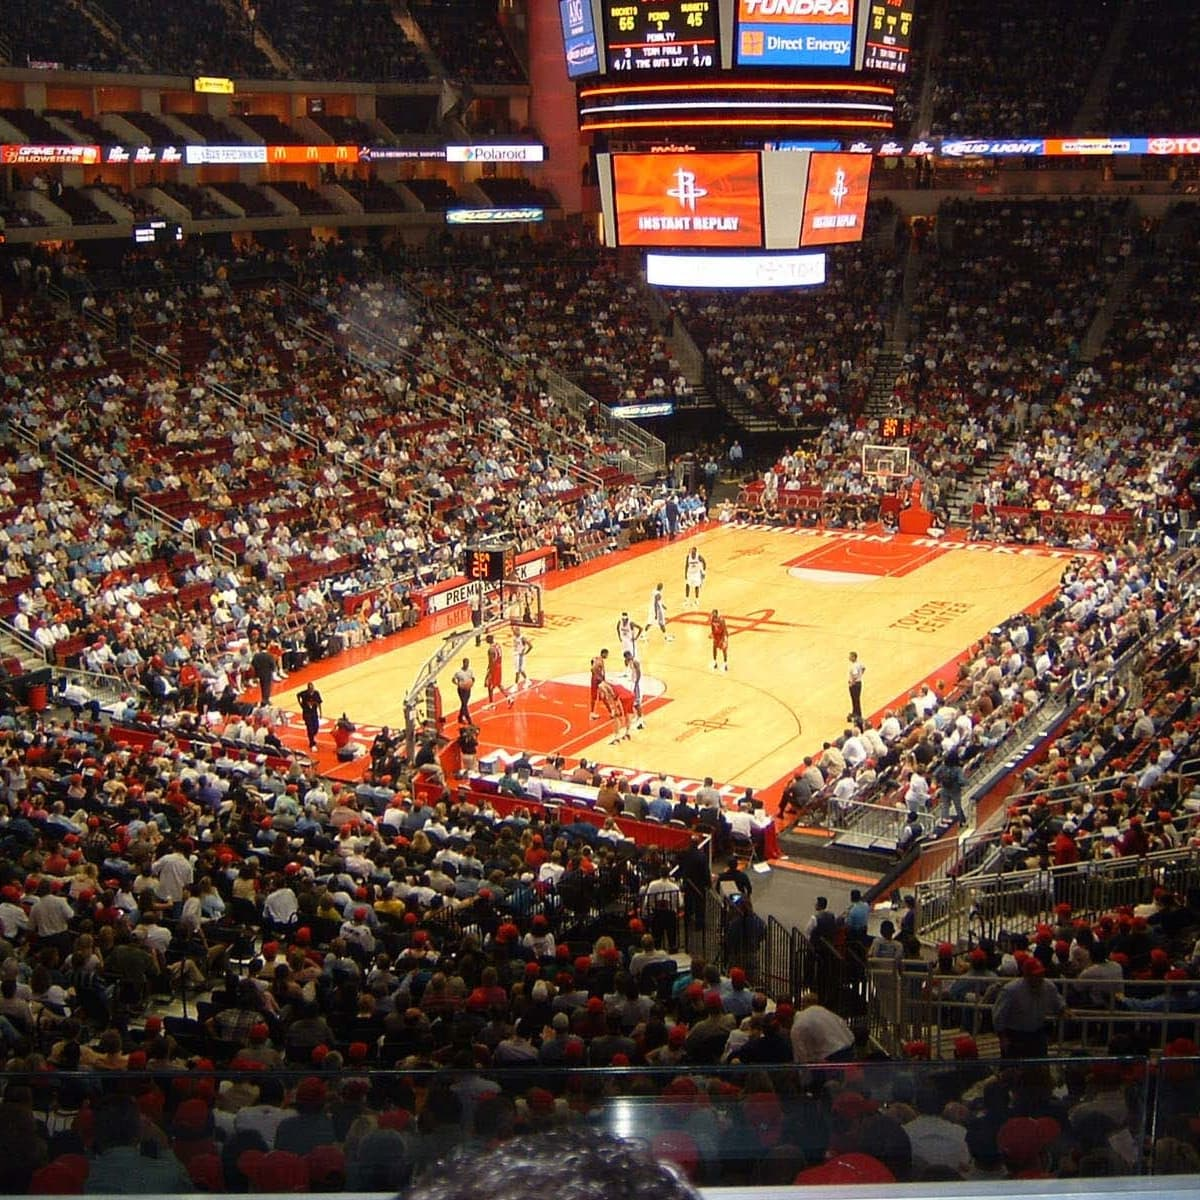 Places-A&E-Toyota Center-interior-game